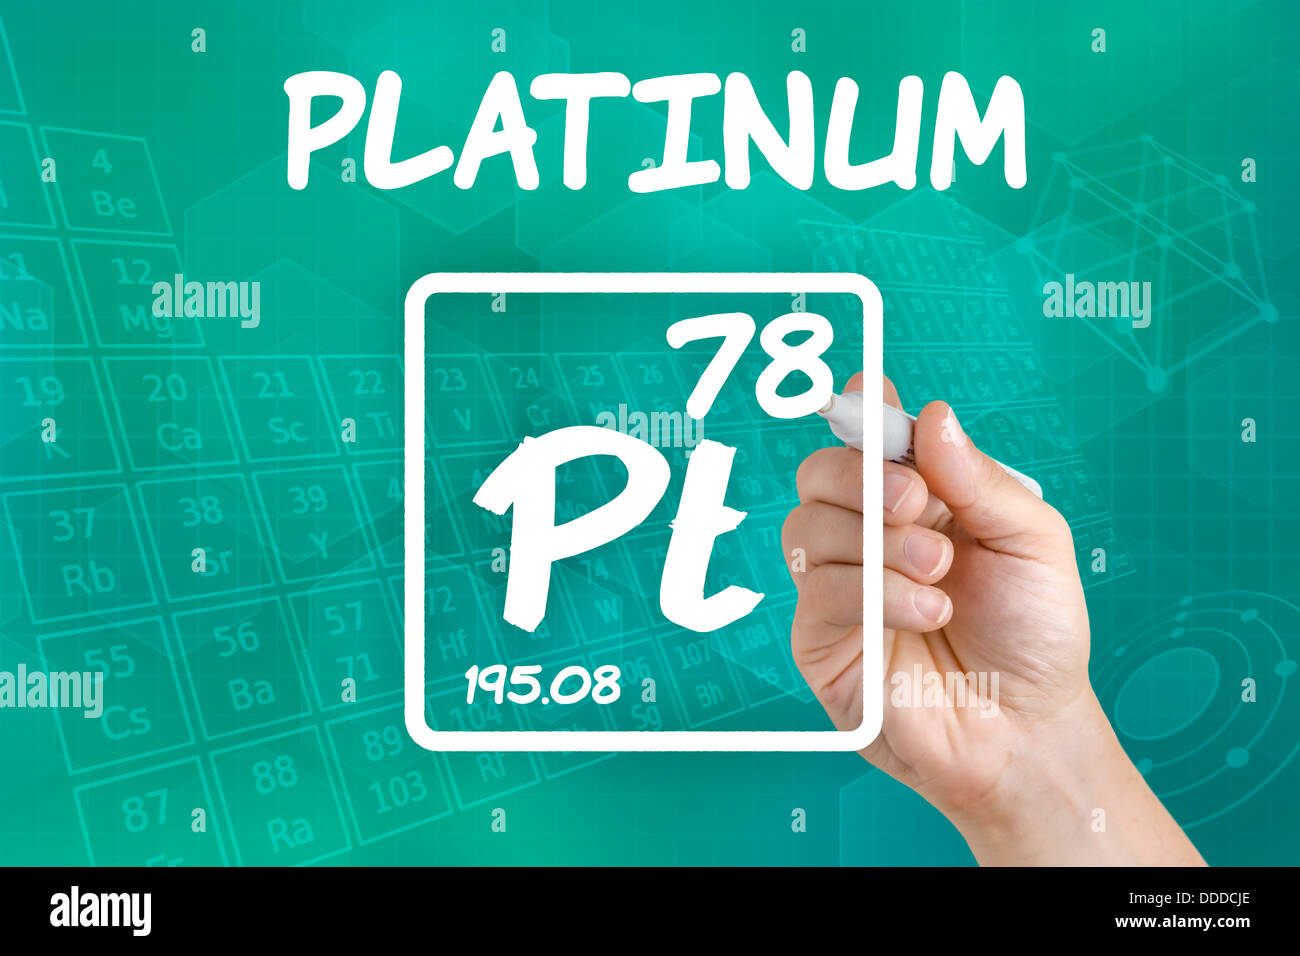 Platinum Pt Chemical Element Sign Stock Photos Platinum Pt